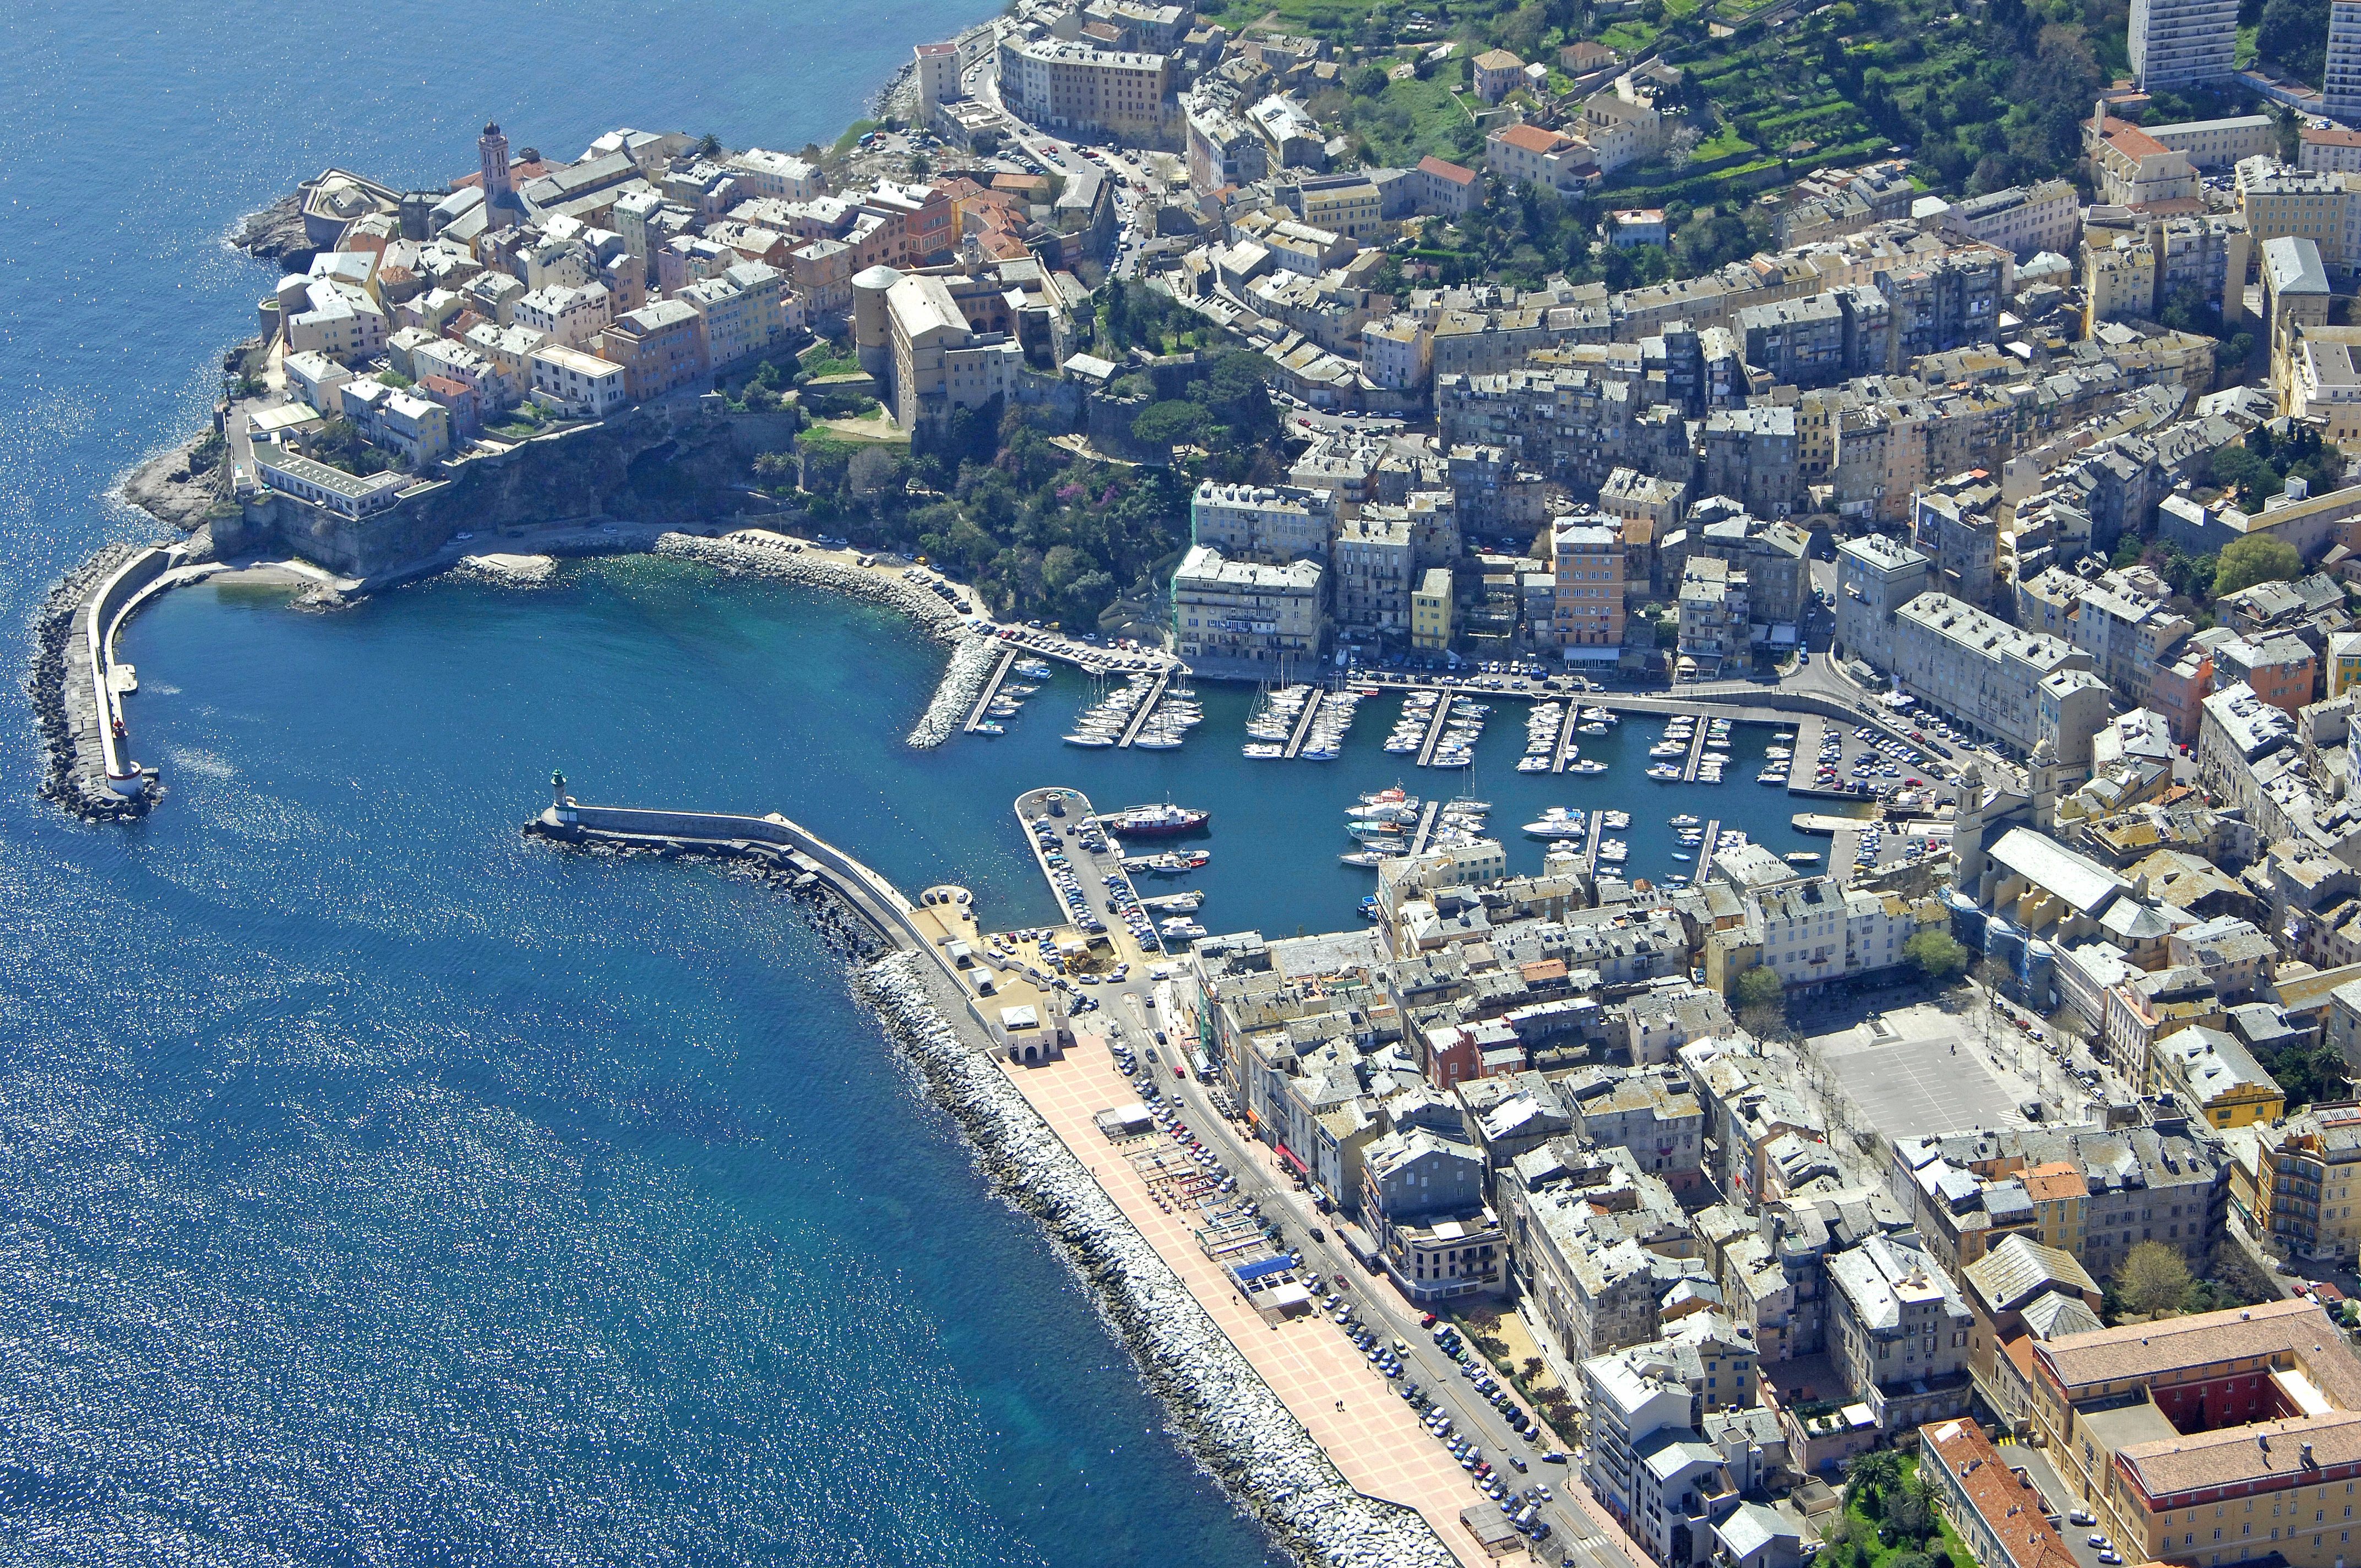 Bastia Vieux Port Marina In Bastia France Marina Reviews Phone